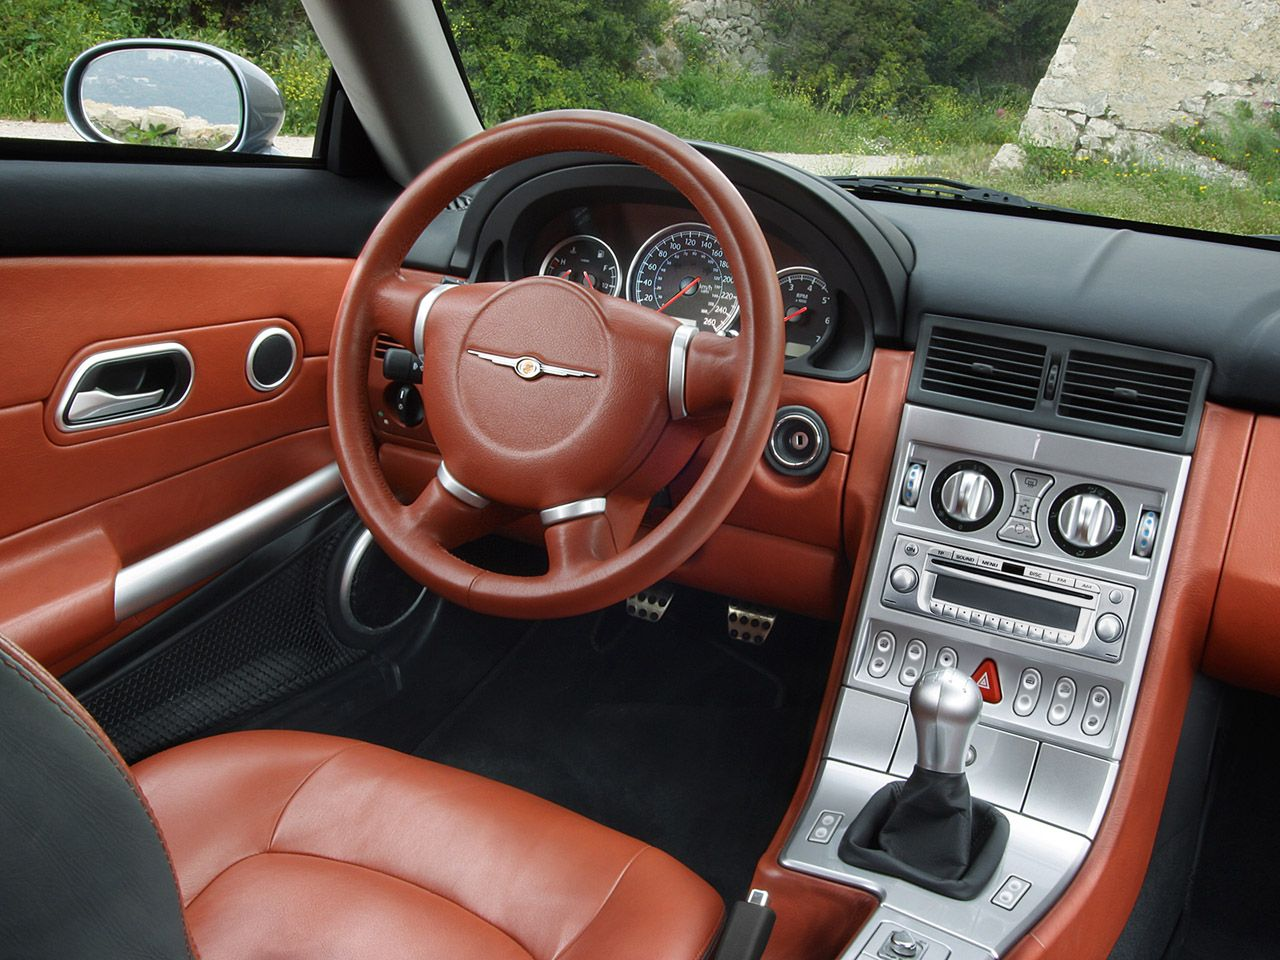 Chrysler Crossfire Interior 1280x960 Wallpaper With Images